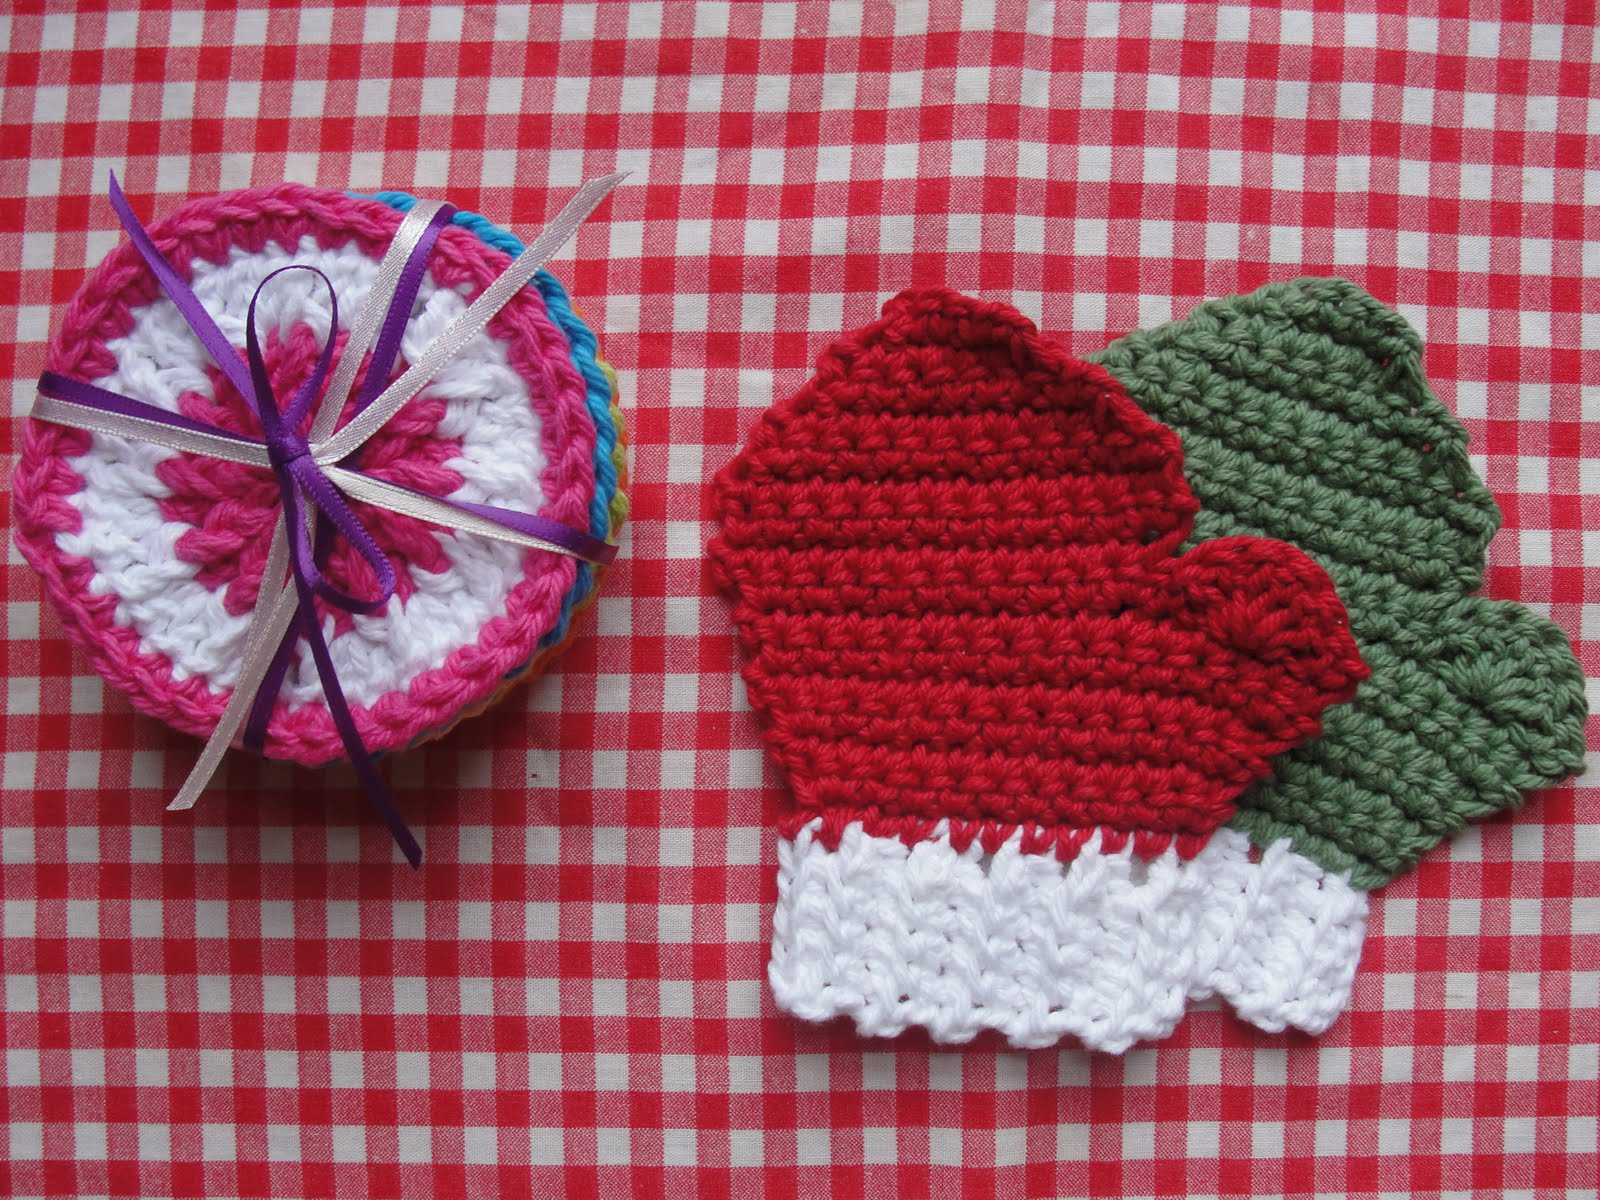 TAWASHI CROCHET PATTERNS – Easy Crochet Patterns